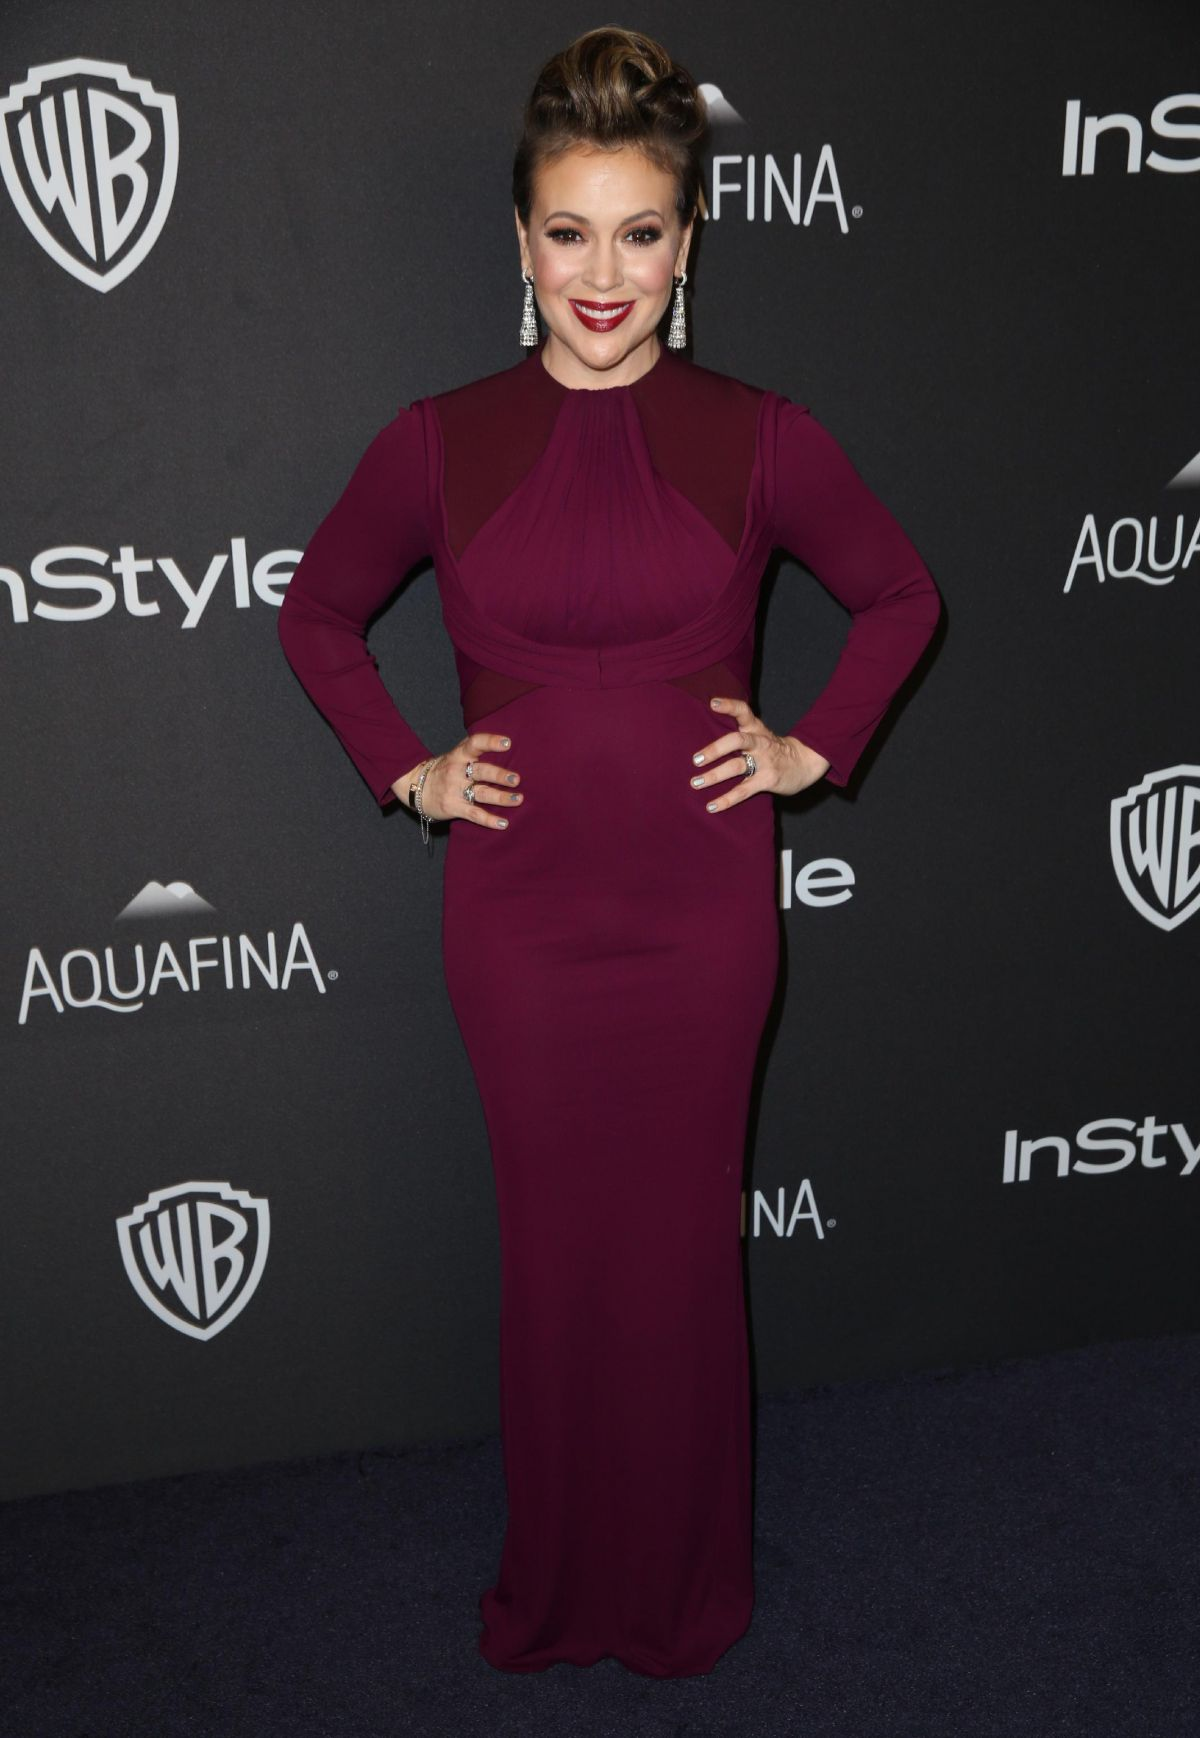 ALYSSA MILANO at Instyle and Warner Bros. 2016 Golden Globe Awards Post-party in Beverly Hills 01/10/2016